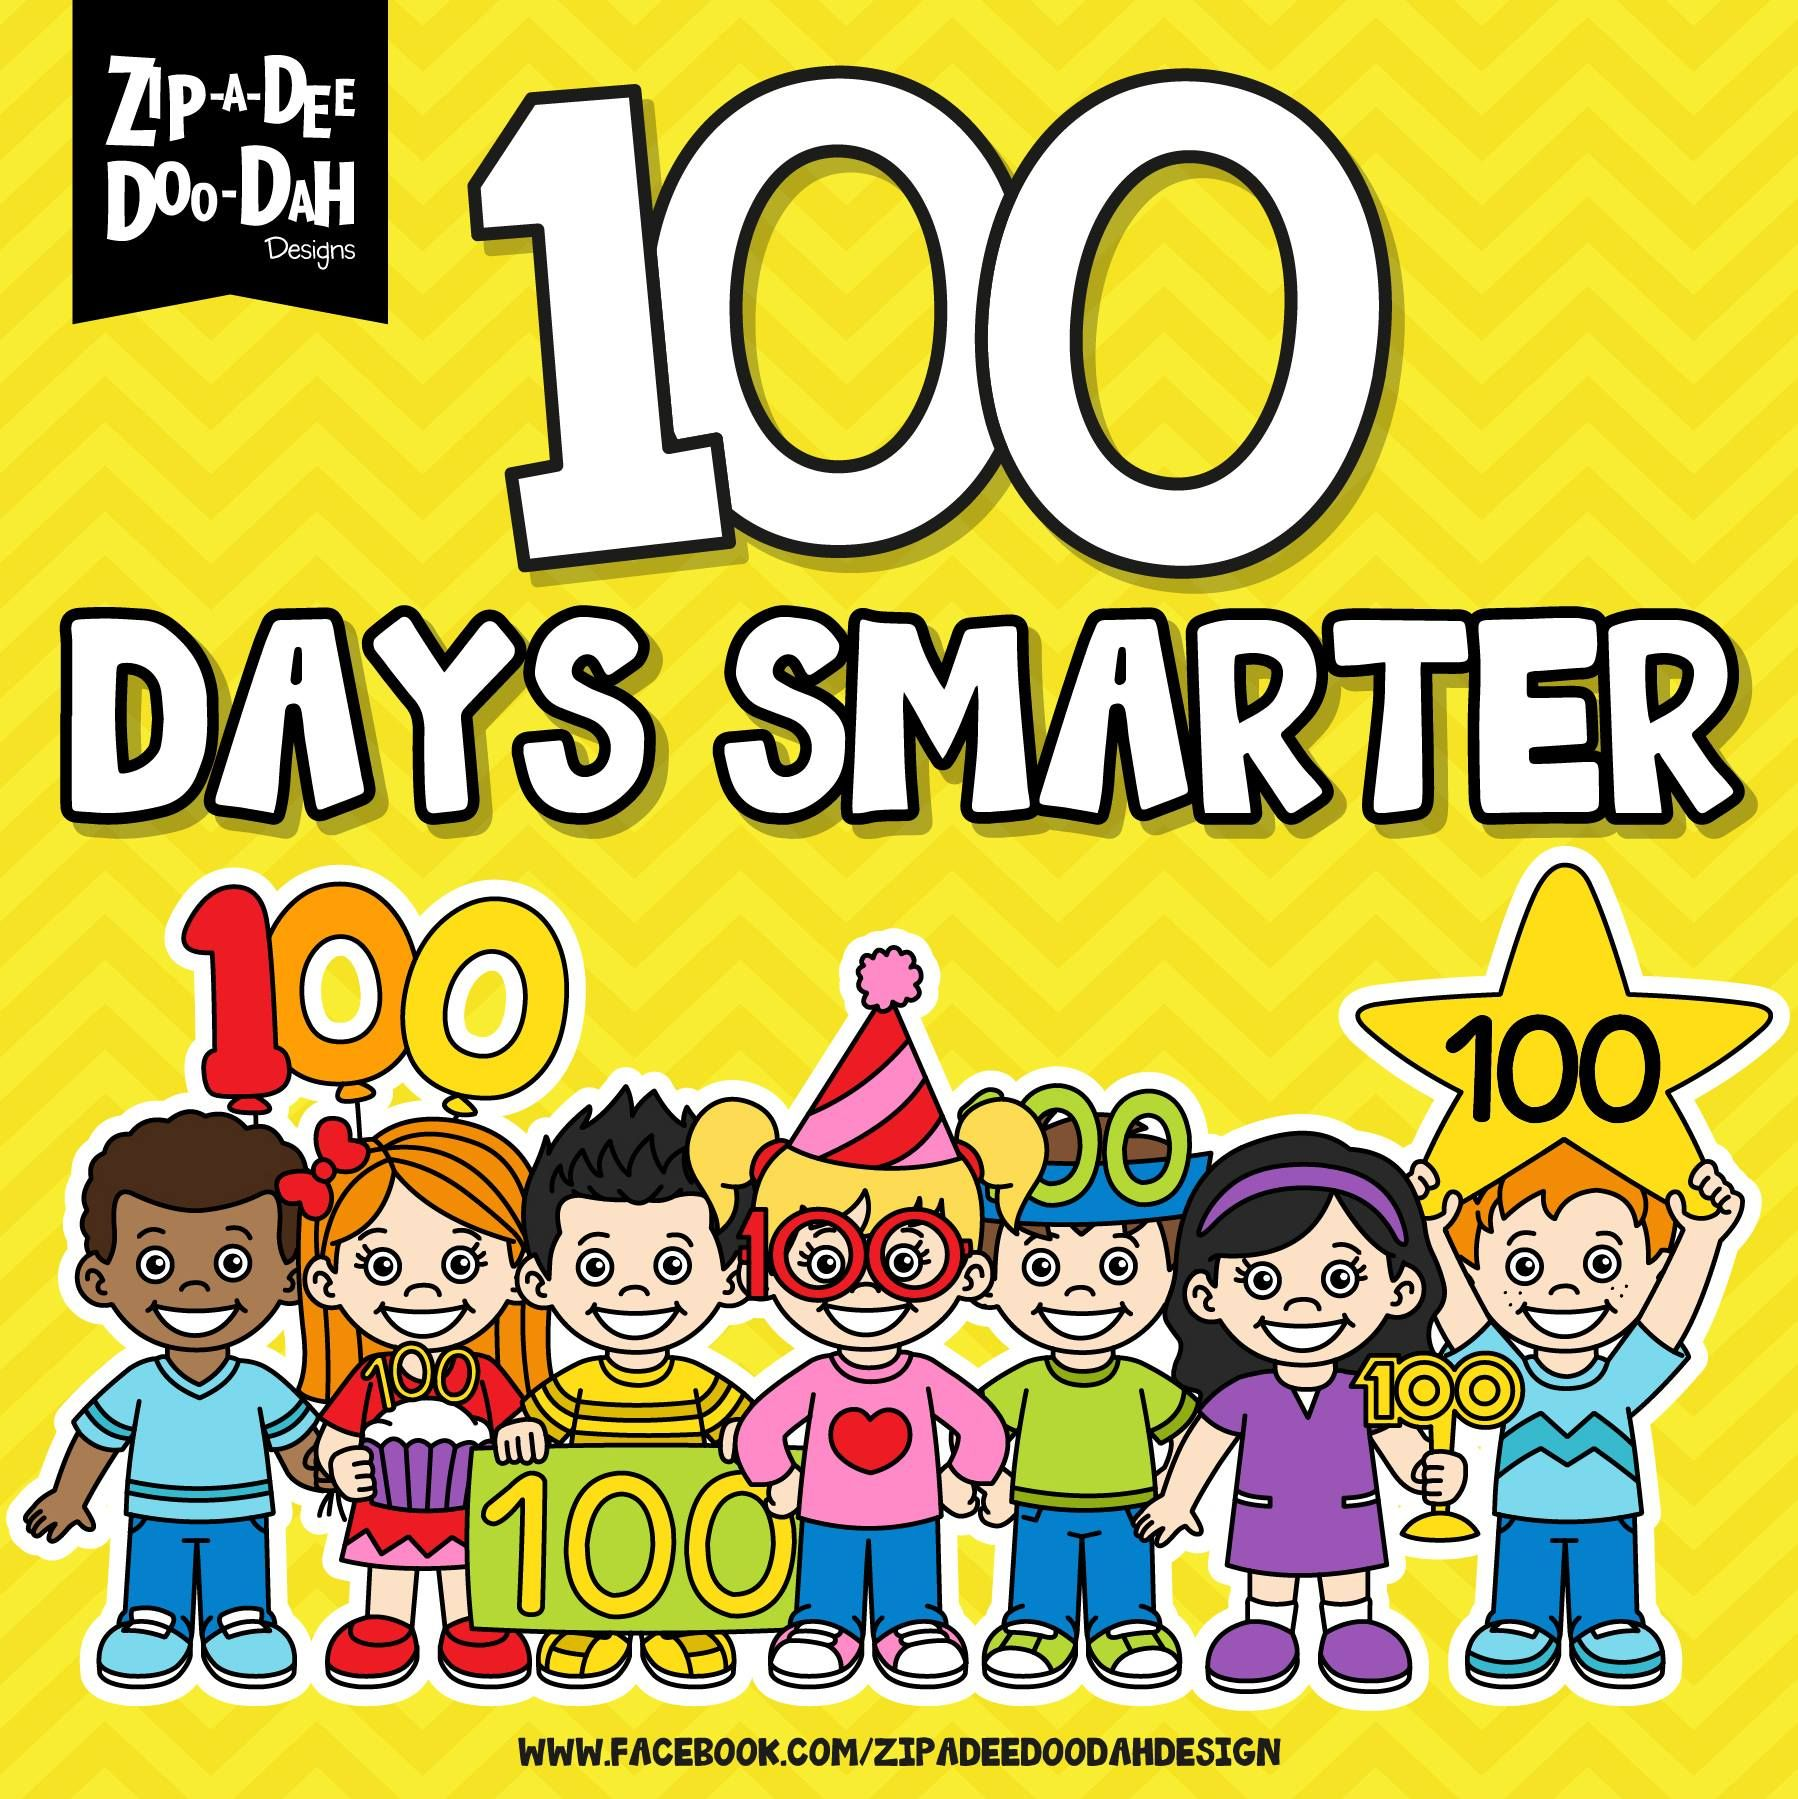 100 Days of School means a 100 Days Smarter! | Inspirational